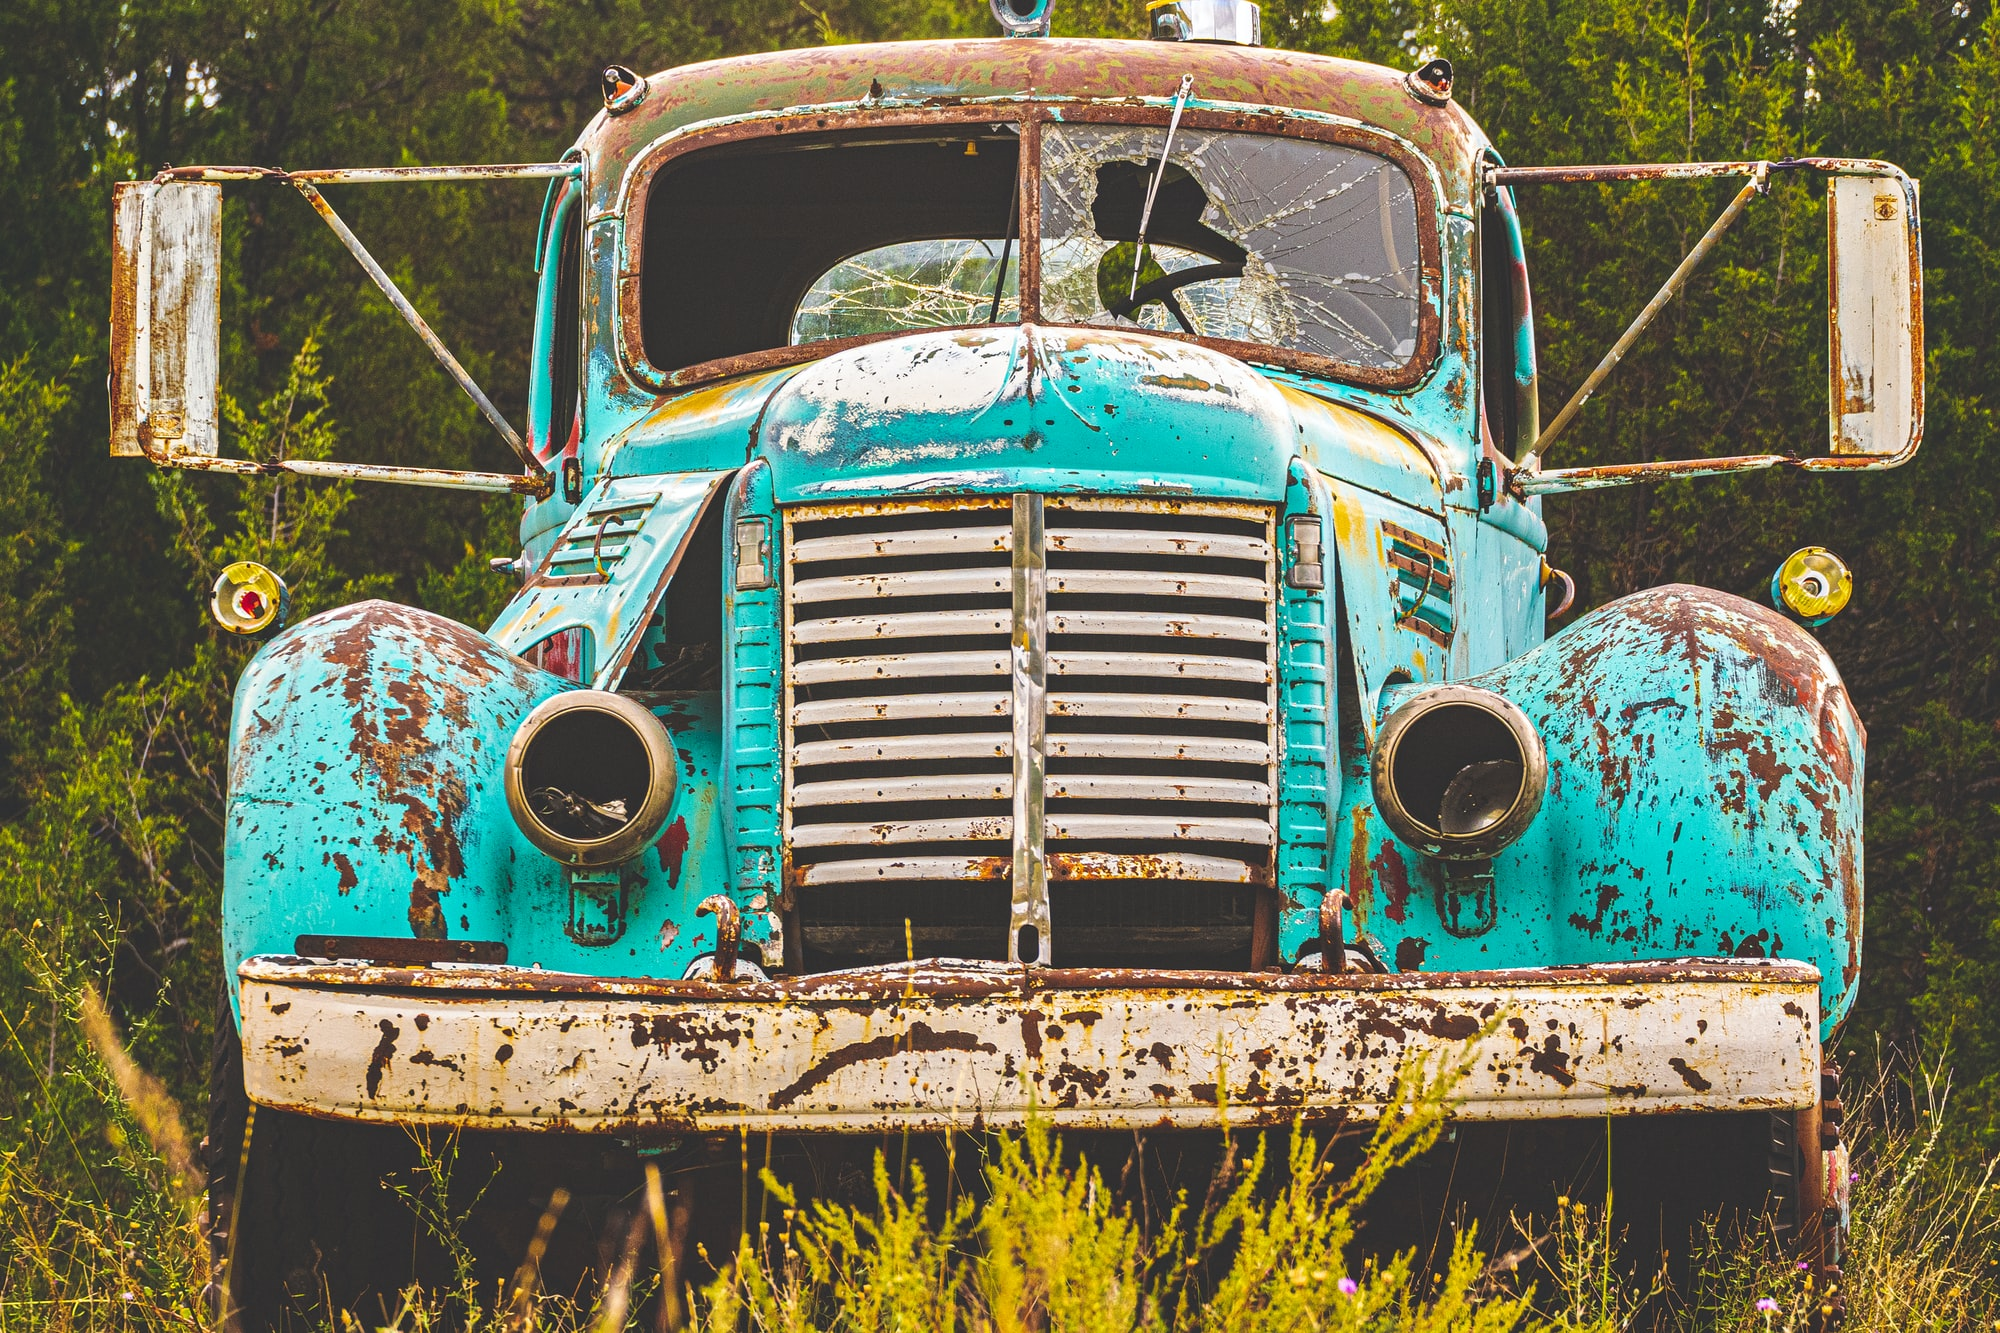 1940's International Harvester KB7 Truck slowly aging in a dry field